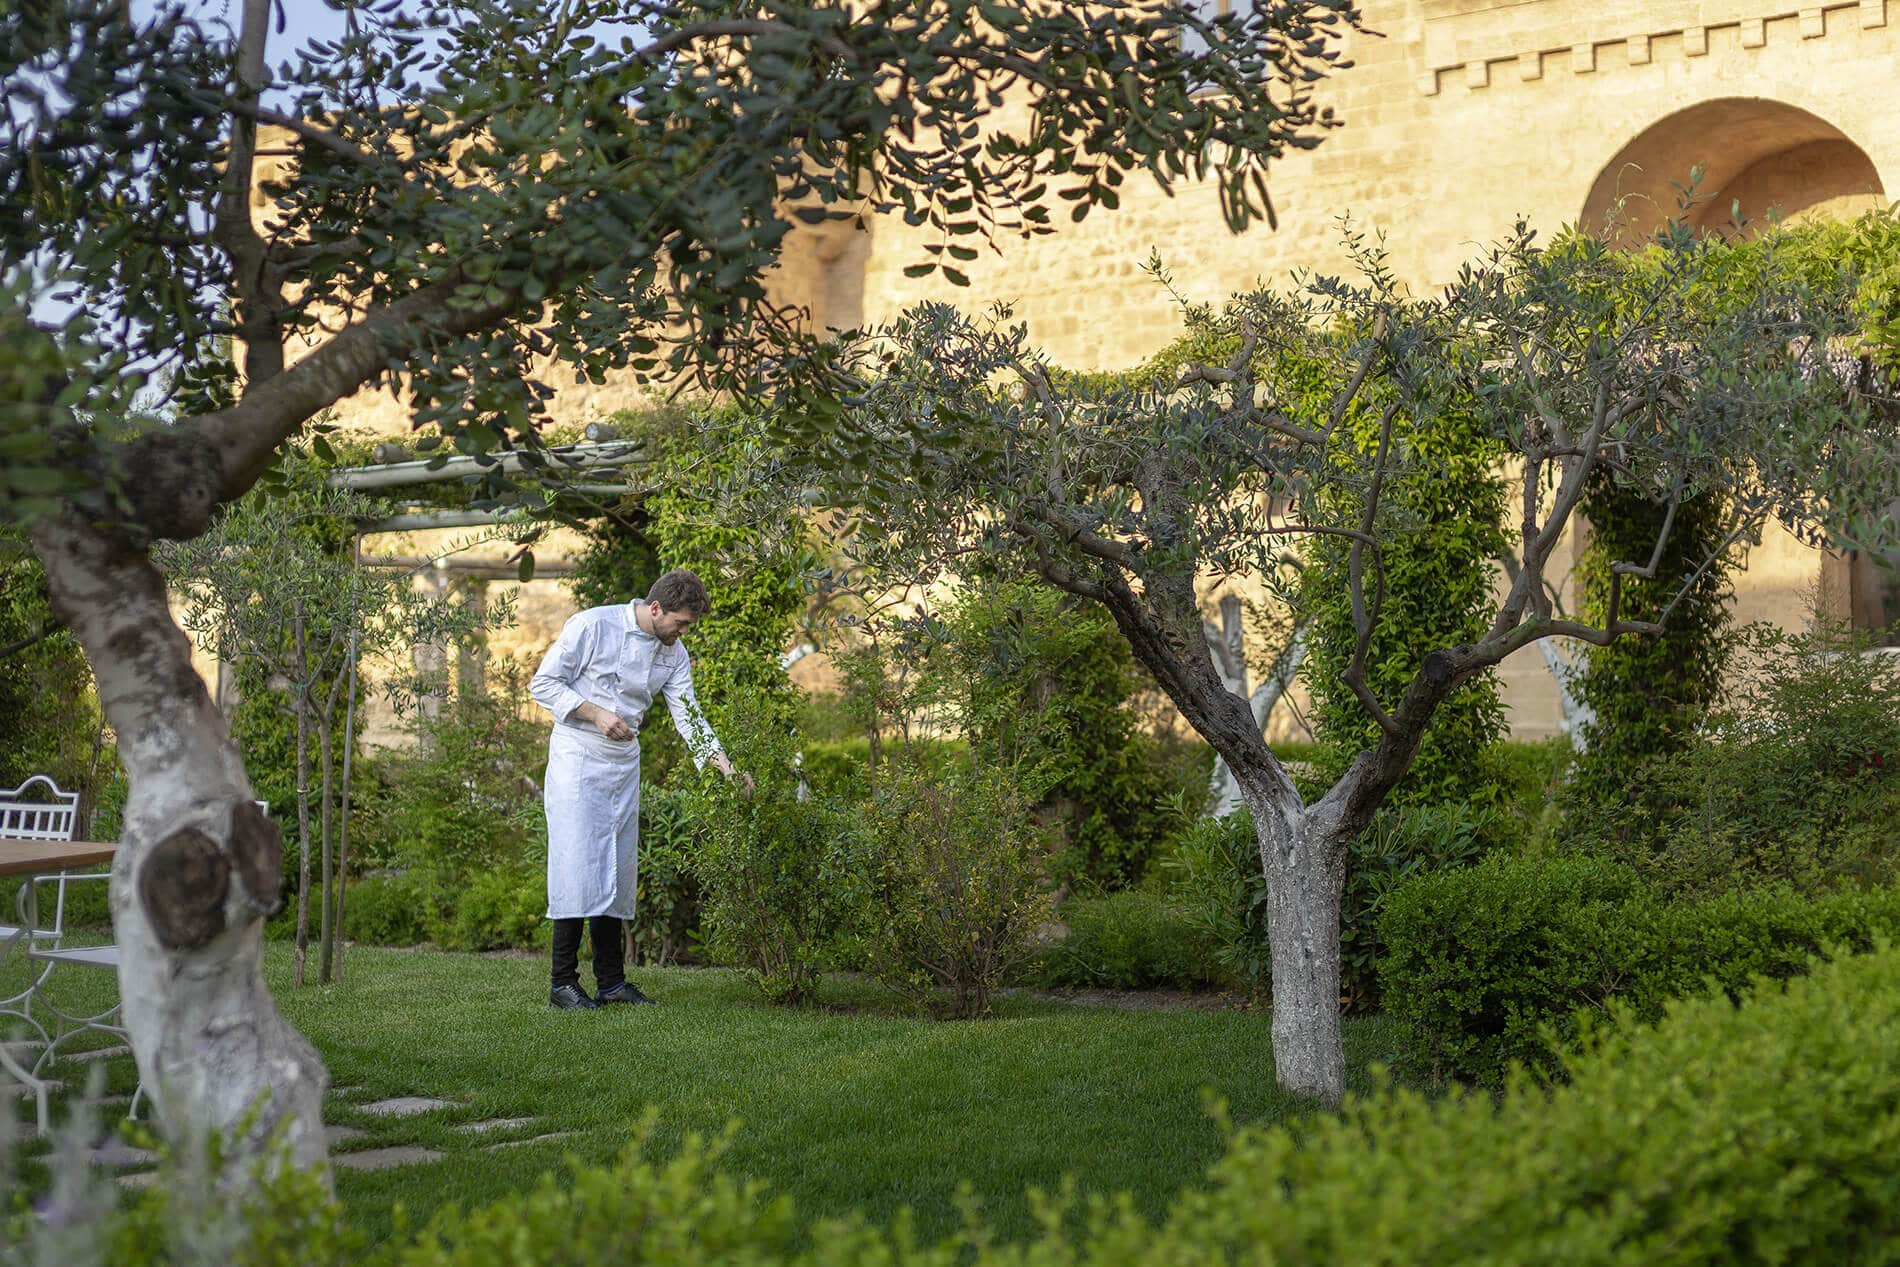 Chef Tommaso Sanguedolce selects herbs from the Castello di Ugento garden for Il Tempo Nuovo Restaurant